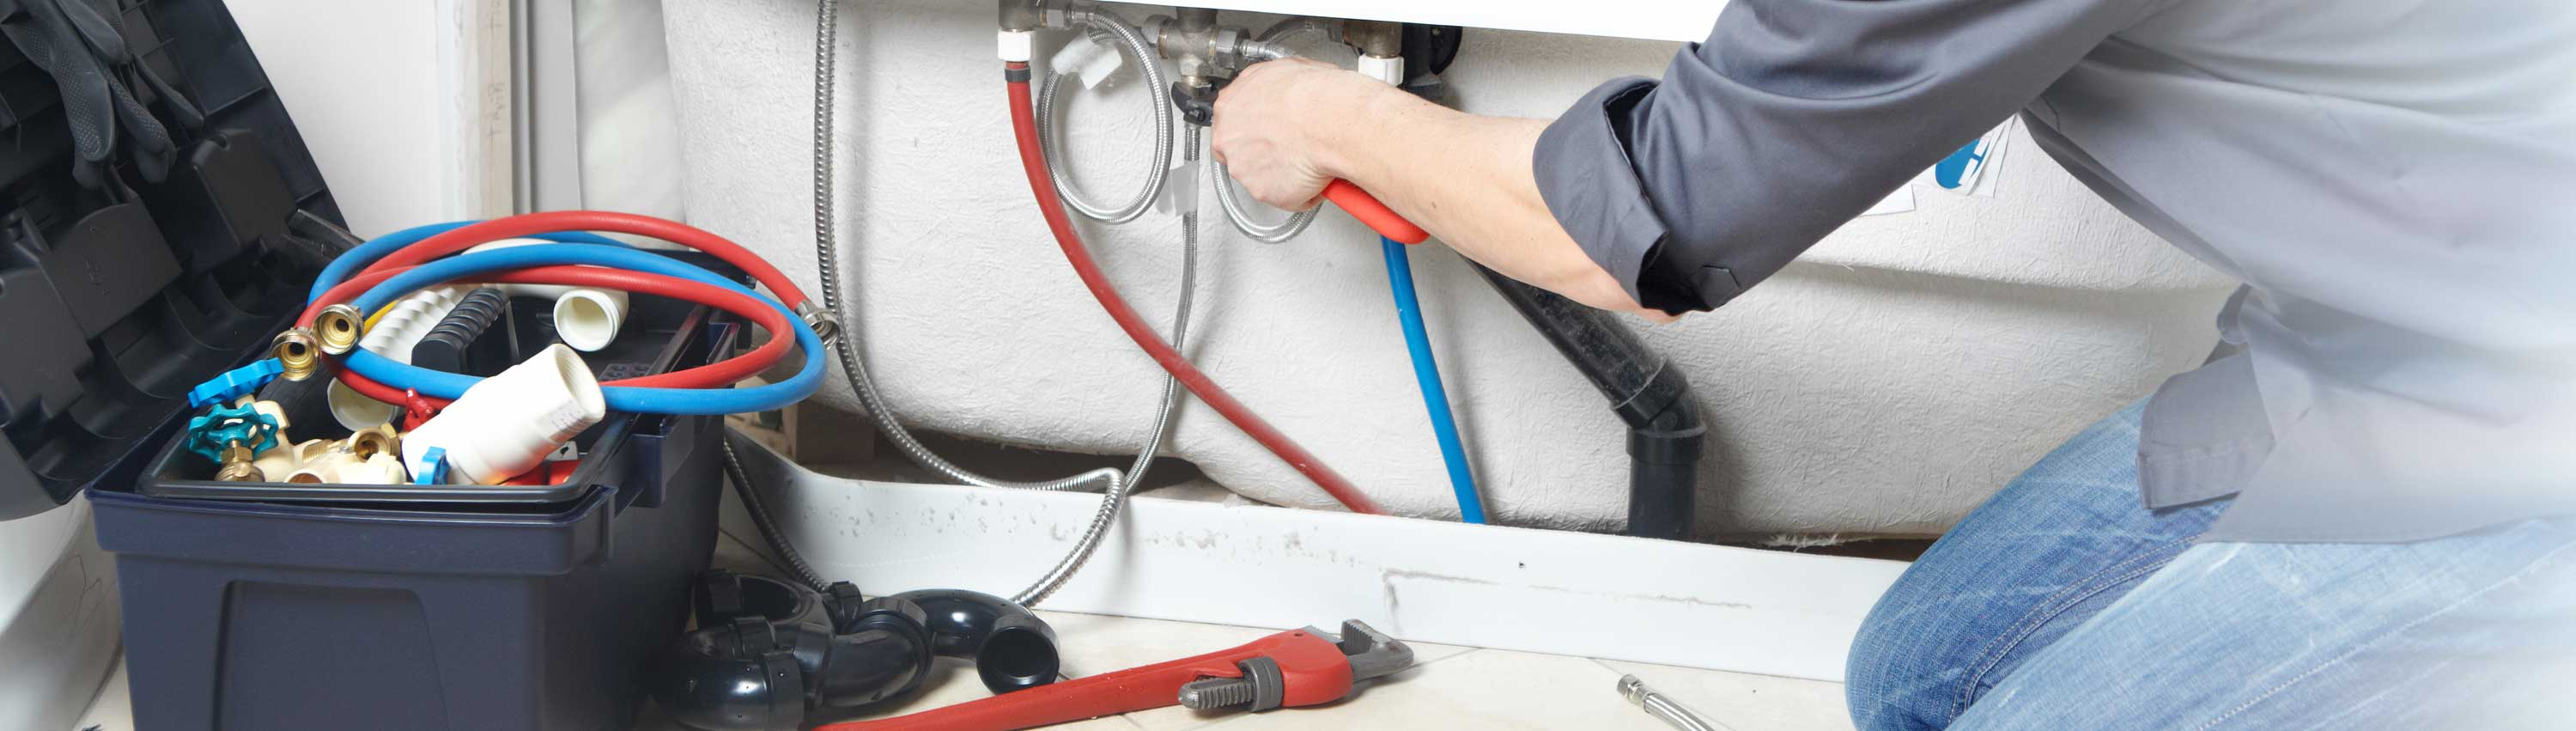 Boiler service and repairs in Retford, Blyth, Bawtry, Ordsall, Tuxford